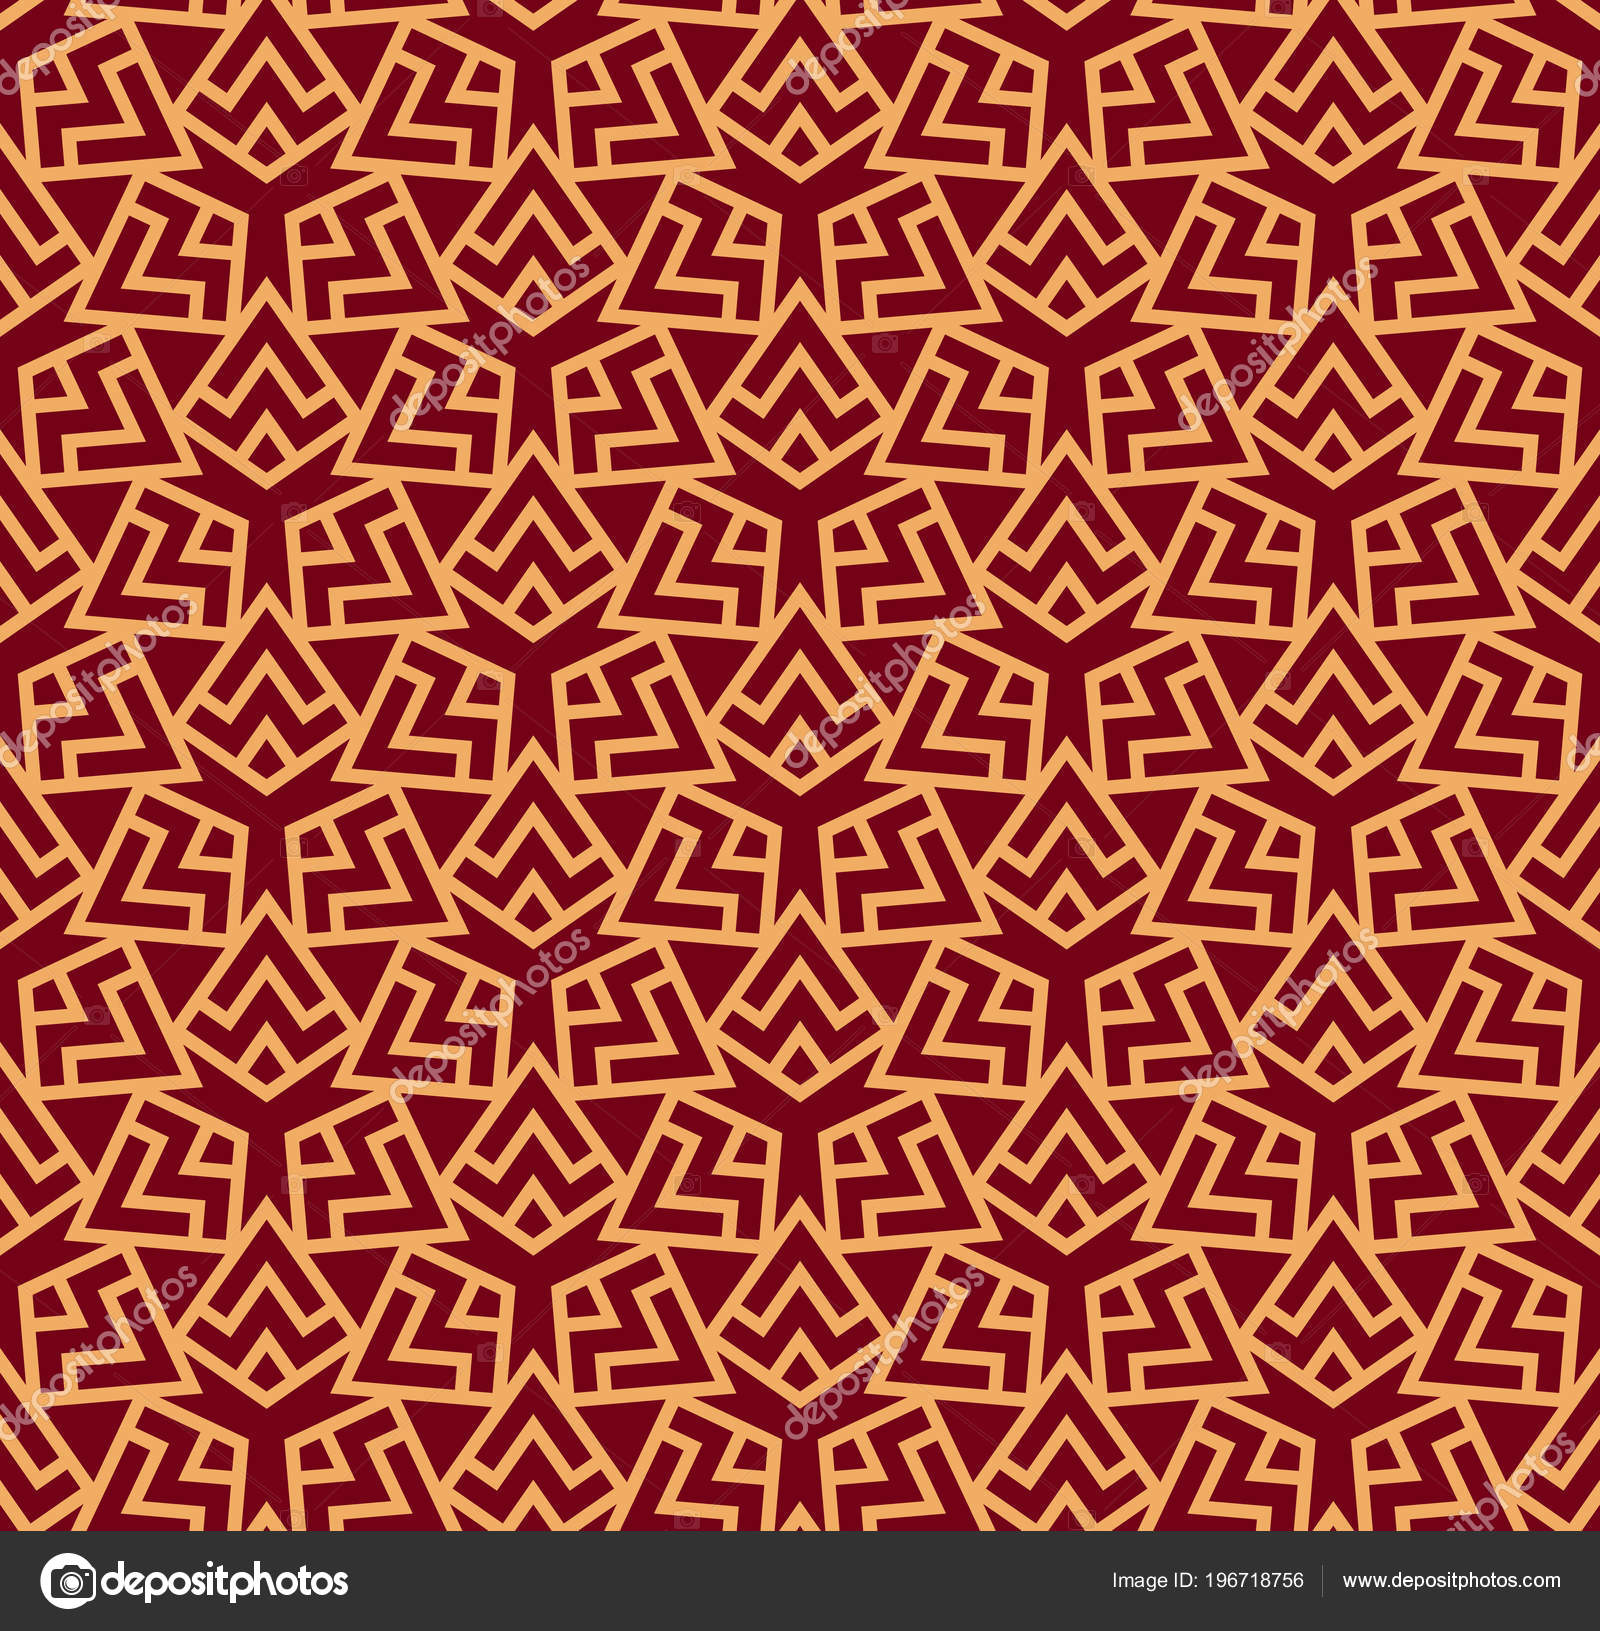 Vector Seamless Pattern Modern Stylish Abstract Texture Repeating Geometric Tiles